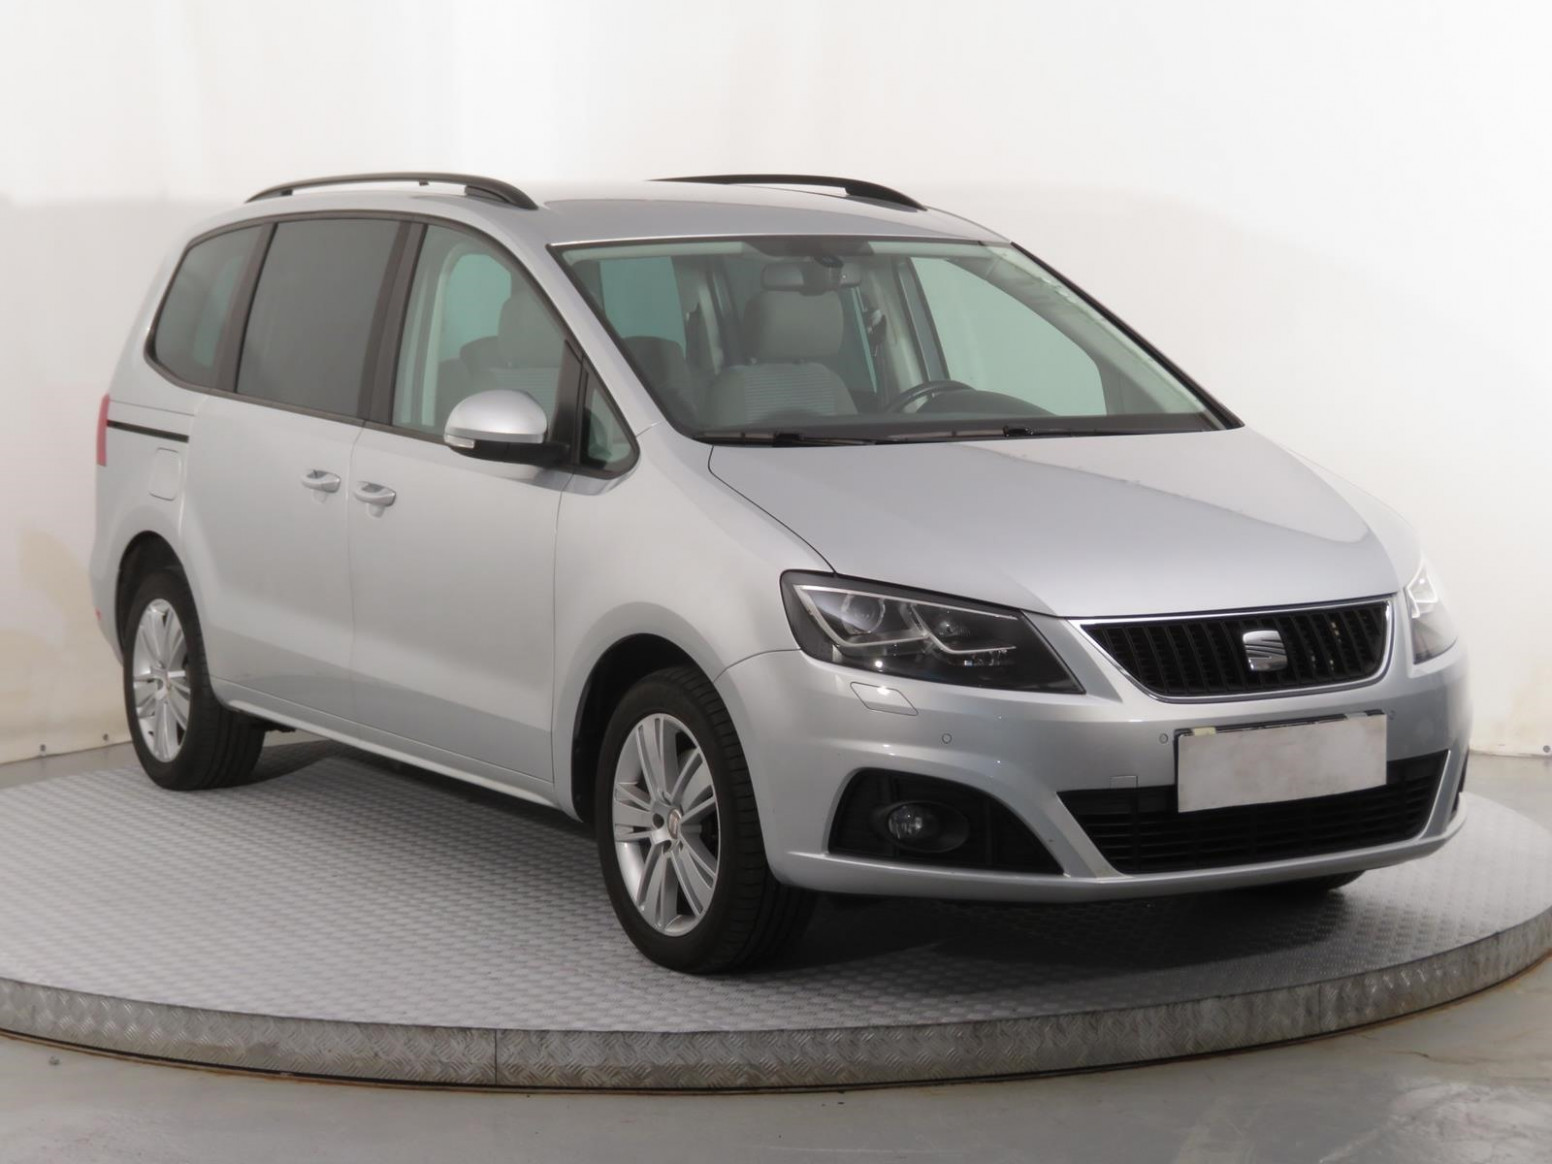 Release 2022 Seat Alhambra